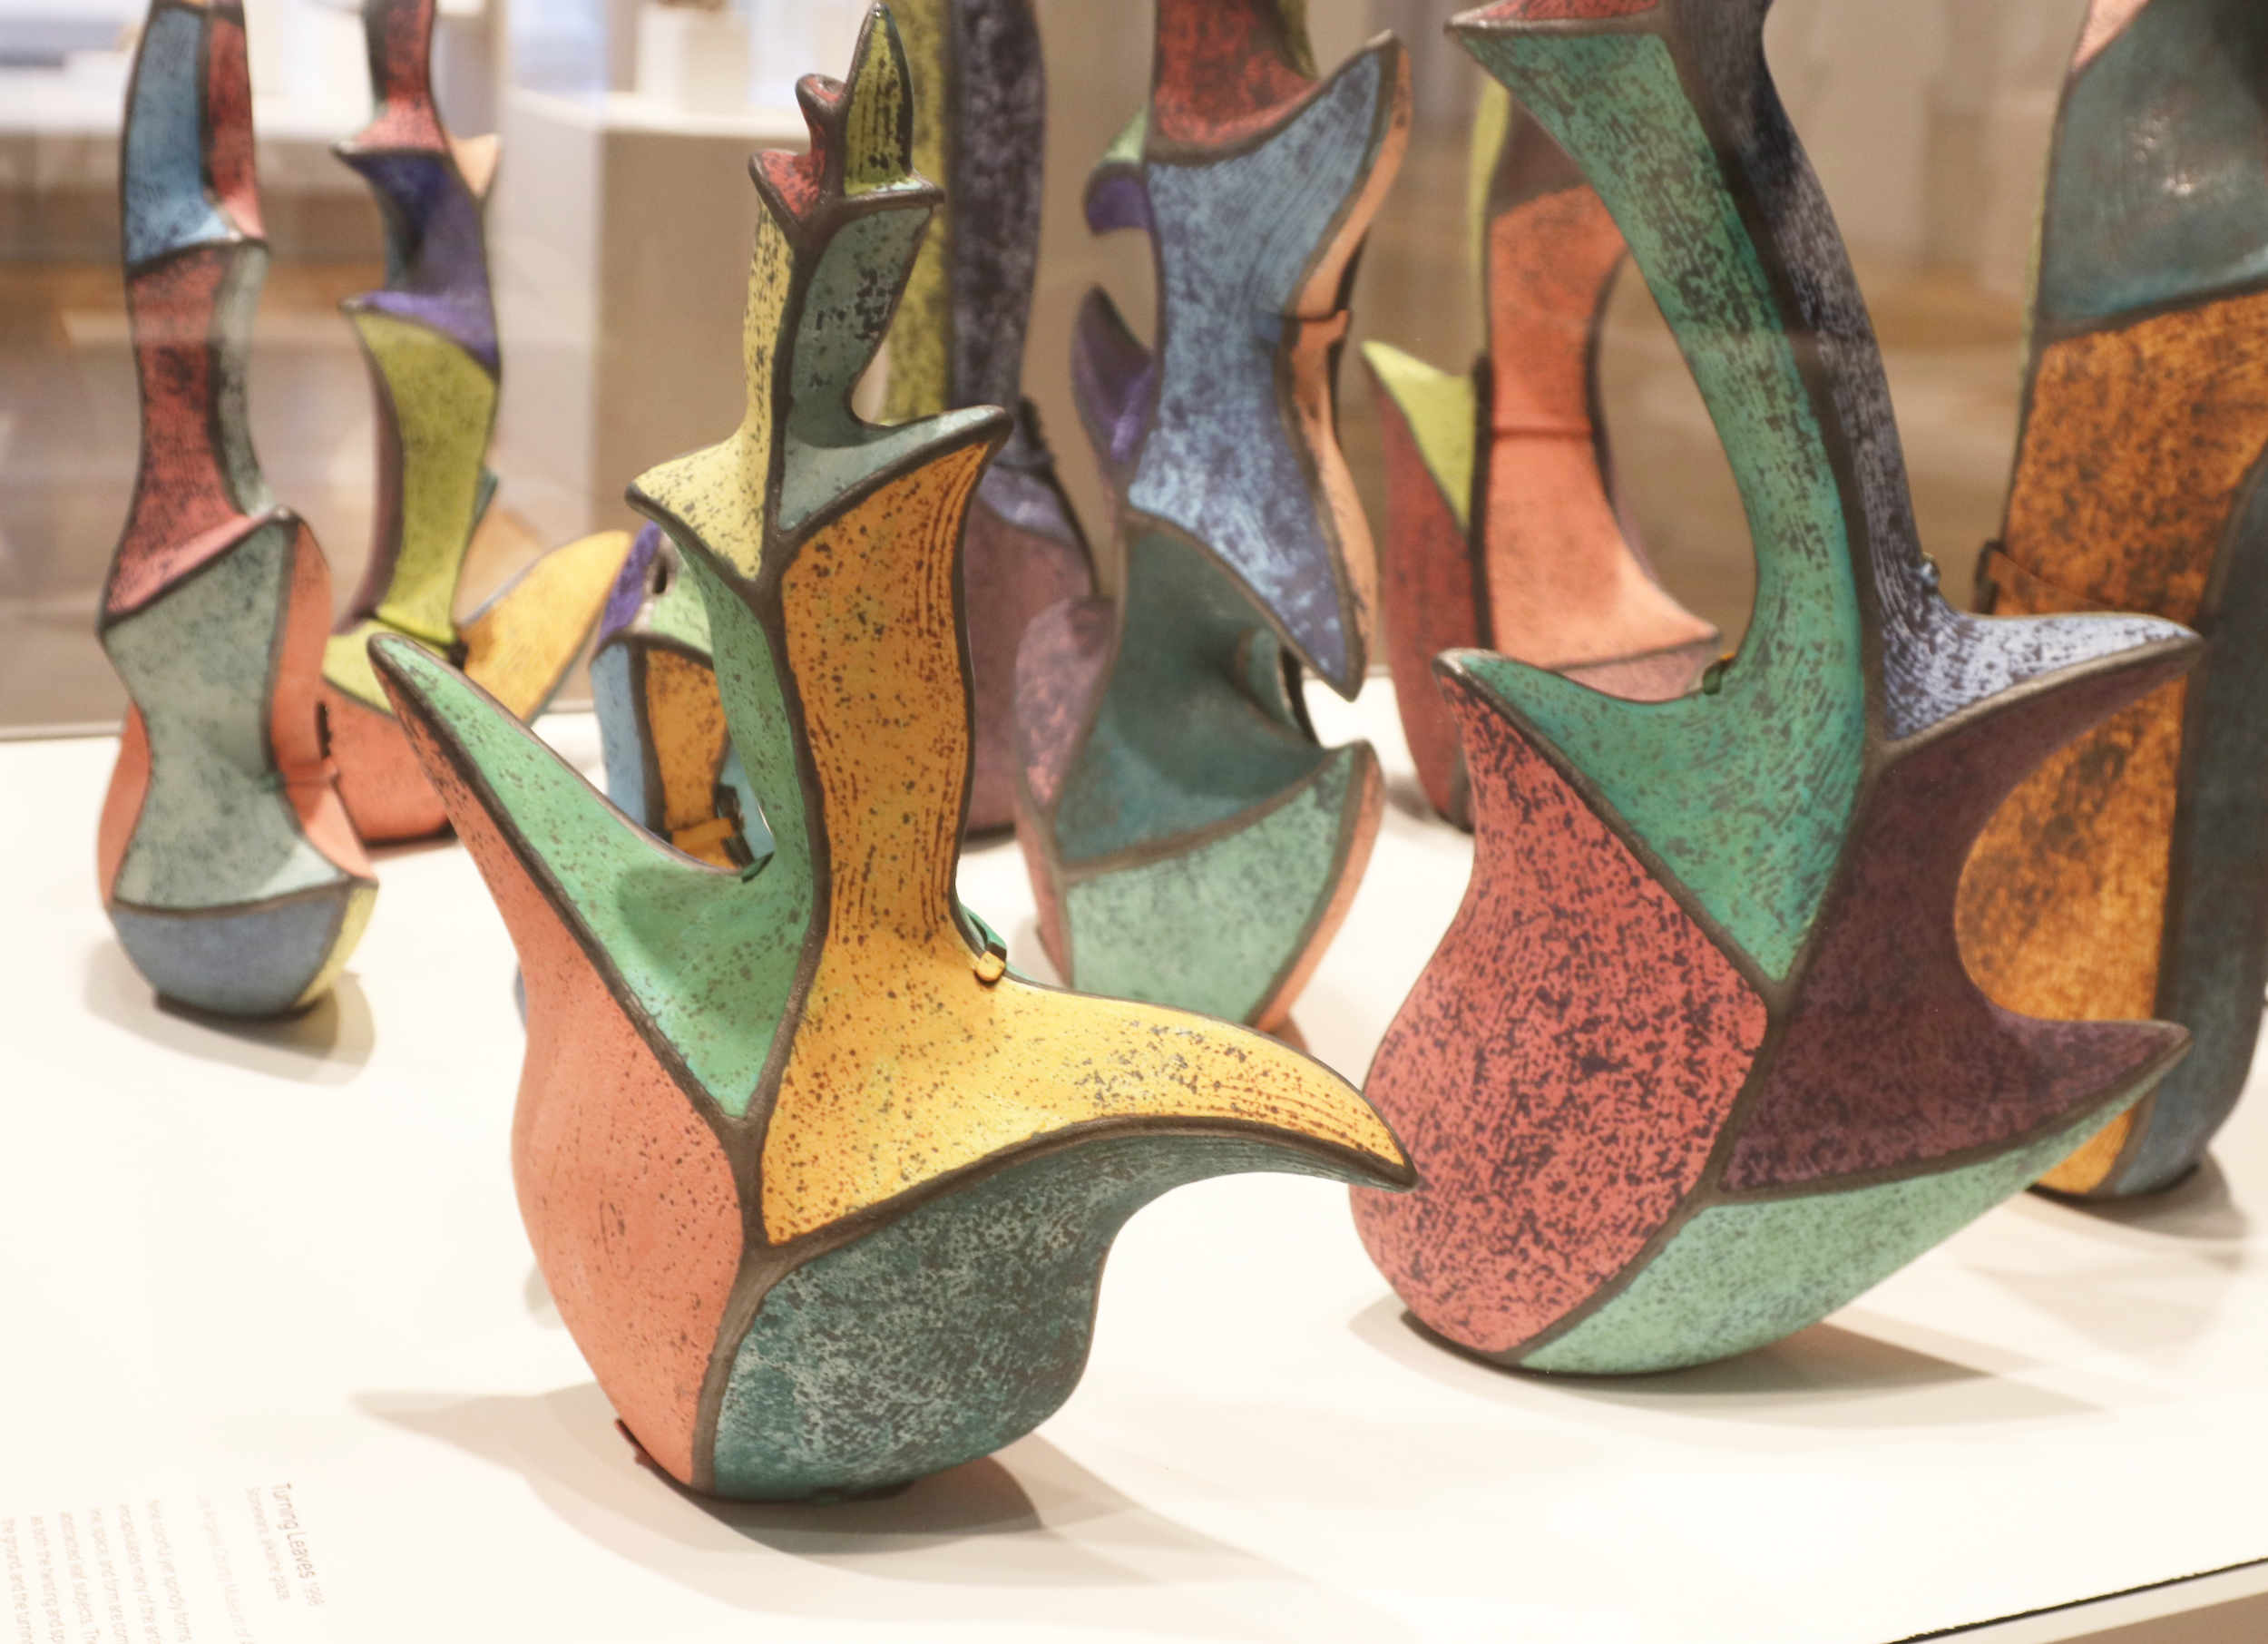 Michael Sherrill Turning Leaves, 1998 (detail). Stoneware, alkaline glaze.